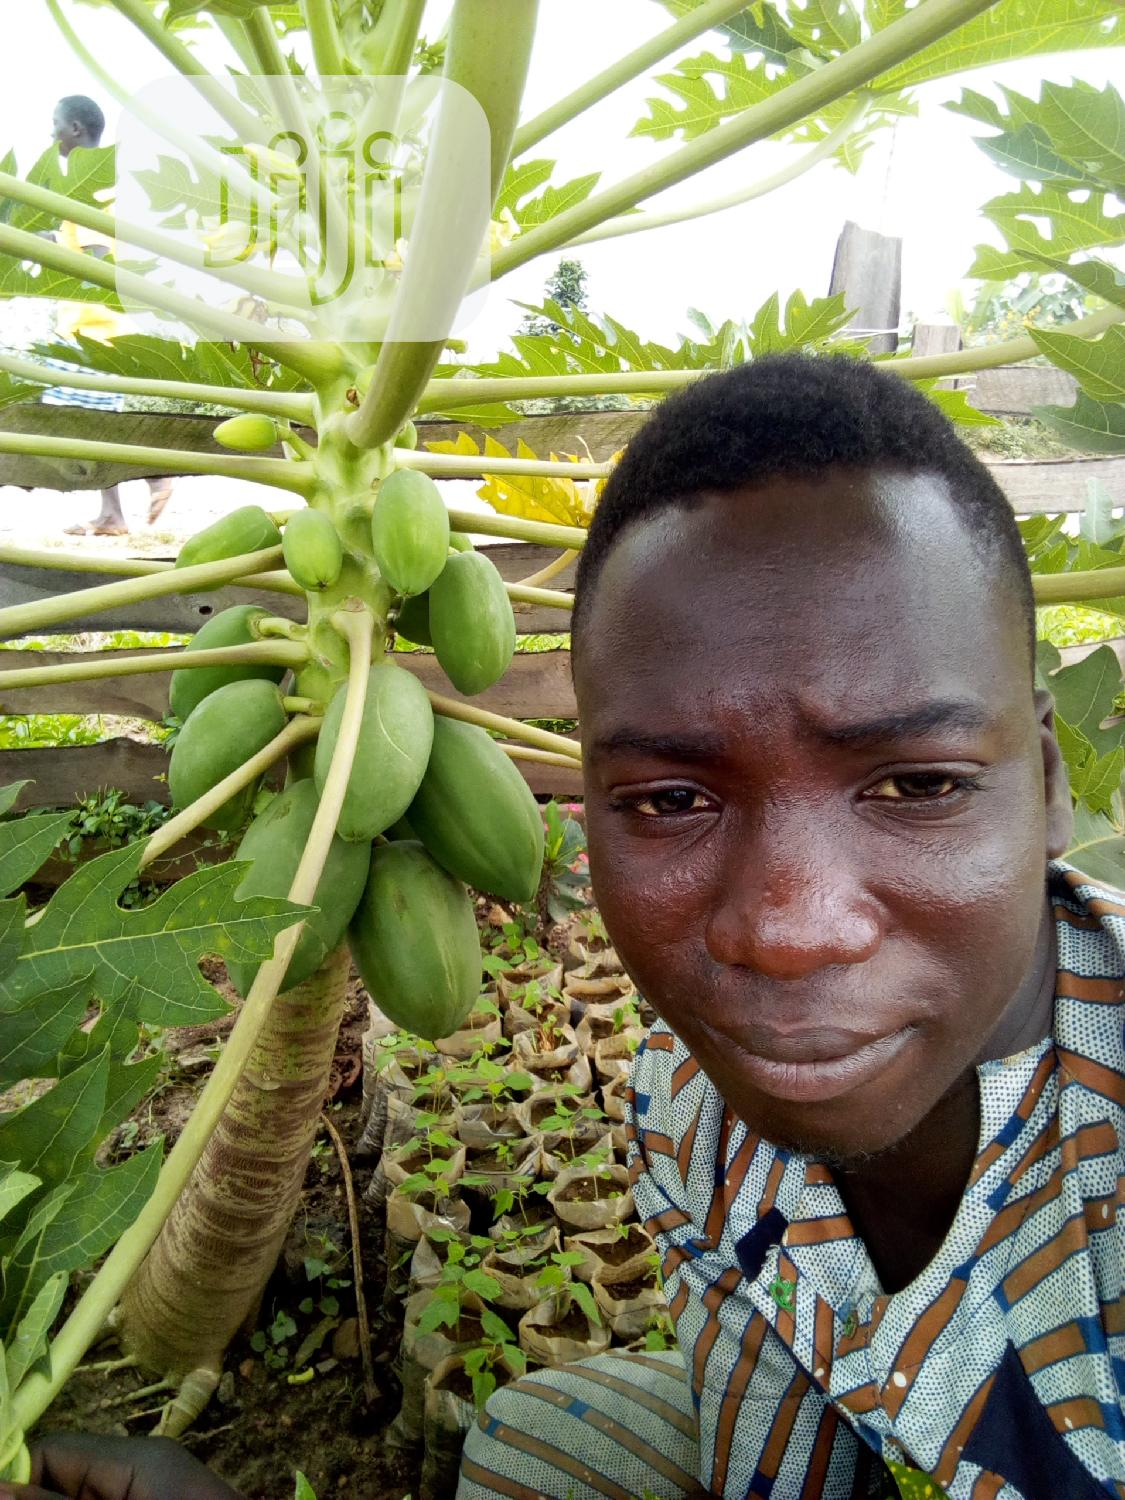 Dwarf Pawpaw Seeds And Seedlings For Sale   Feeds, Supplements & Seeds for sale in Ona-Ara, Oyo State, Nigeria